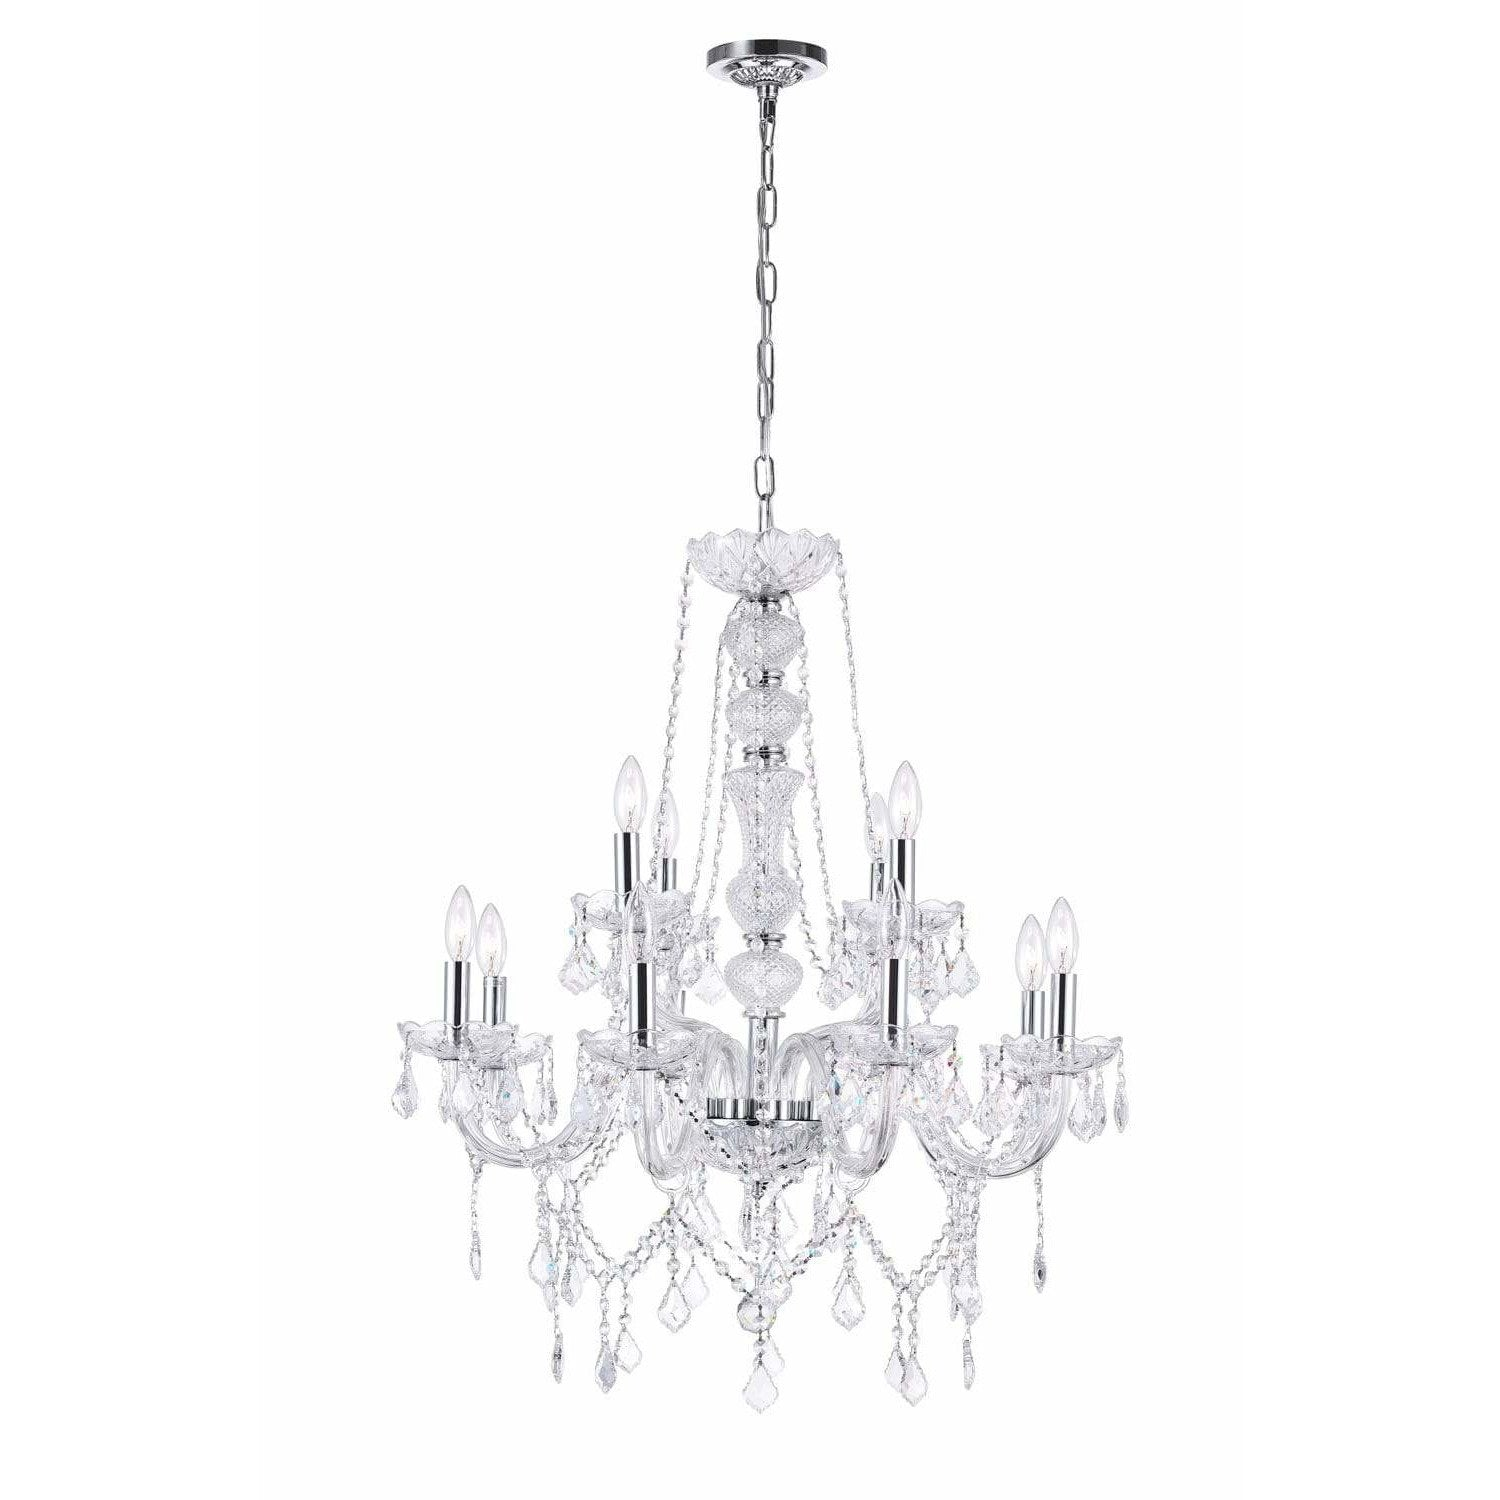 CWI Lighting Chandeliers Chrome / K9 Clear Princeton 12 Light Down Chandelier with Chrome finish by CWI Lighting 8023P30C